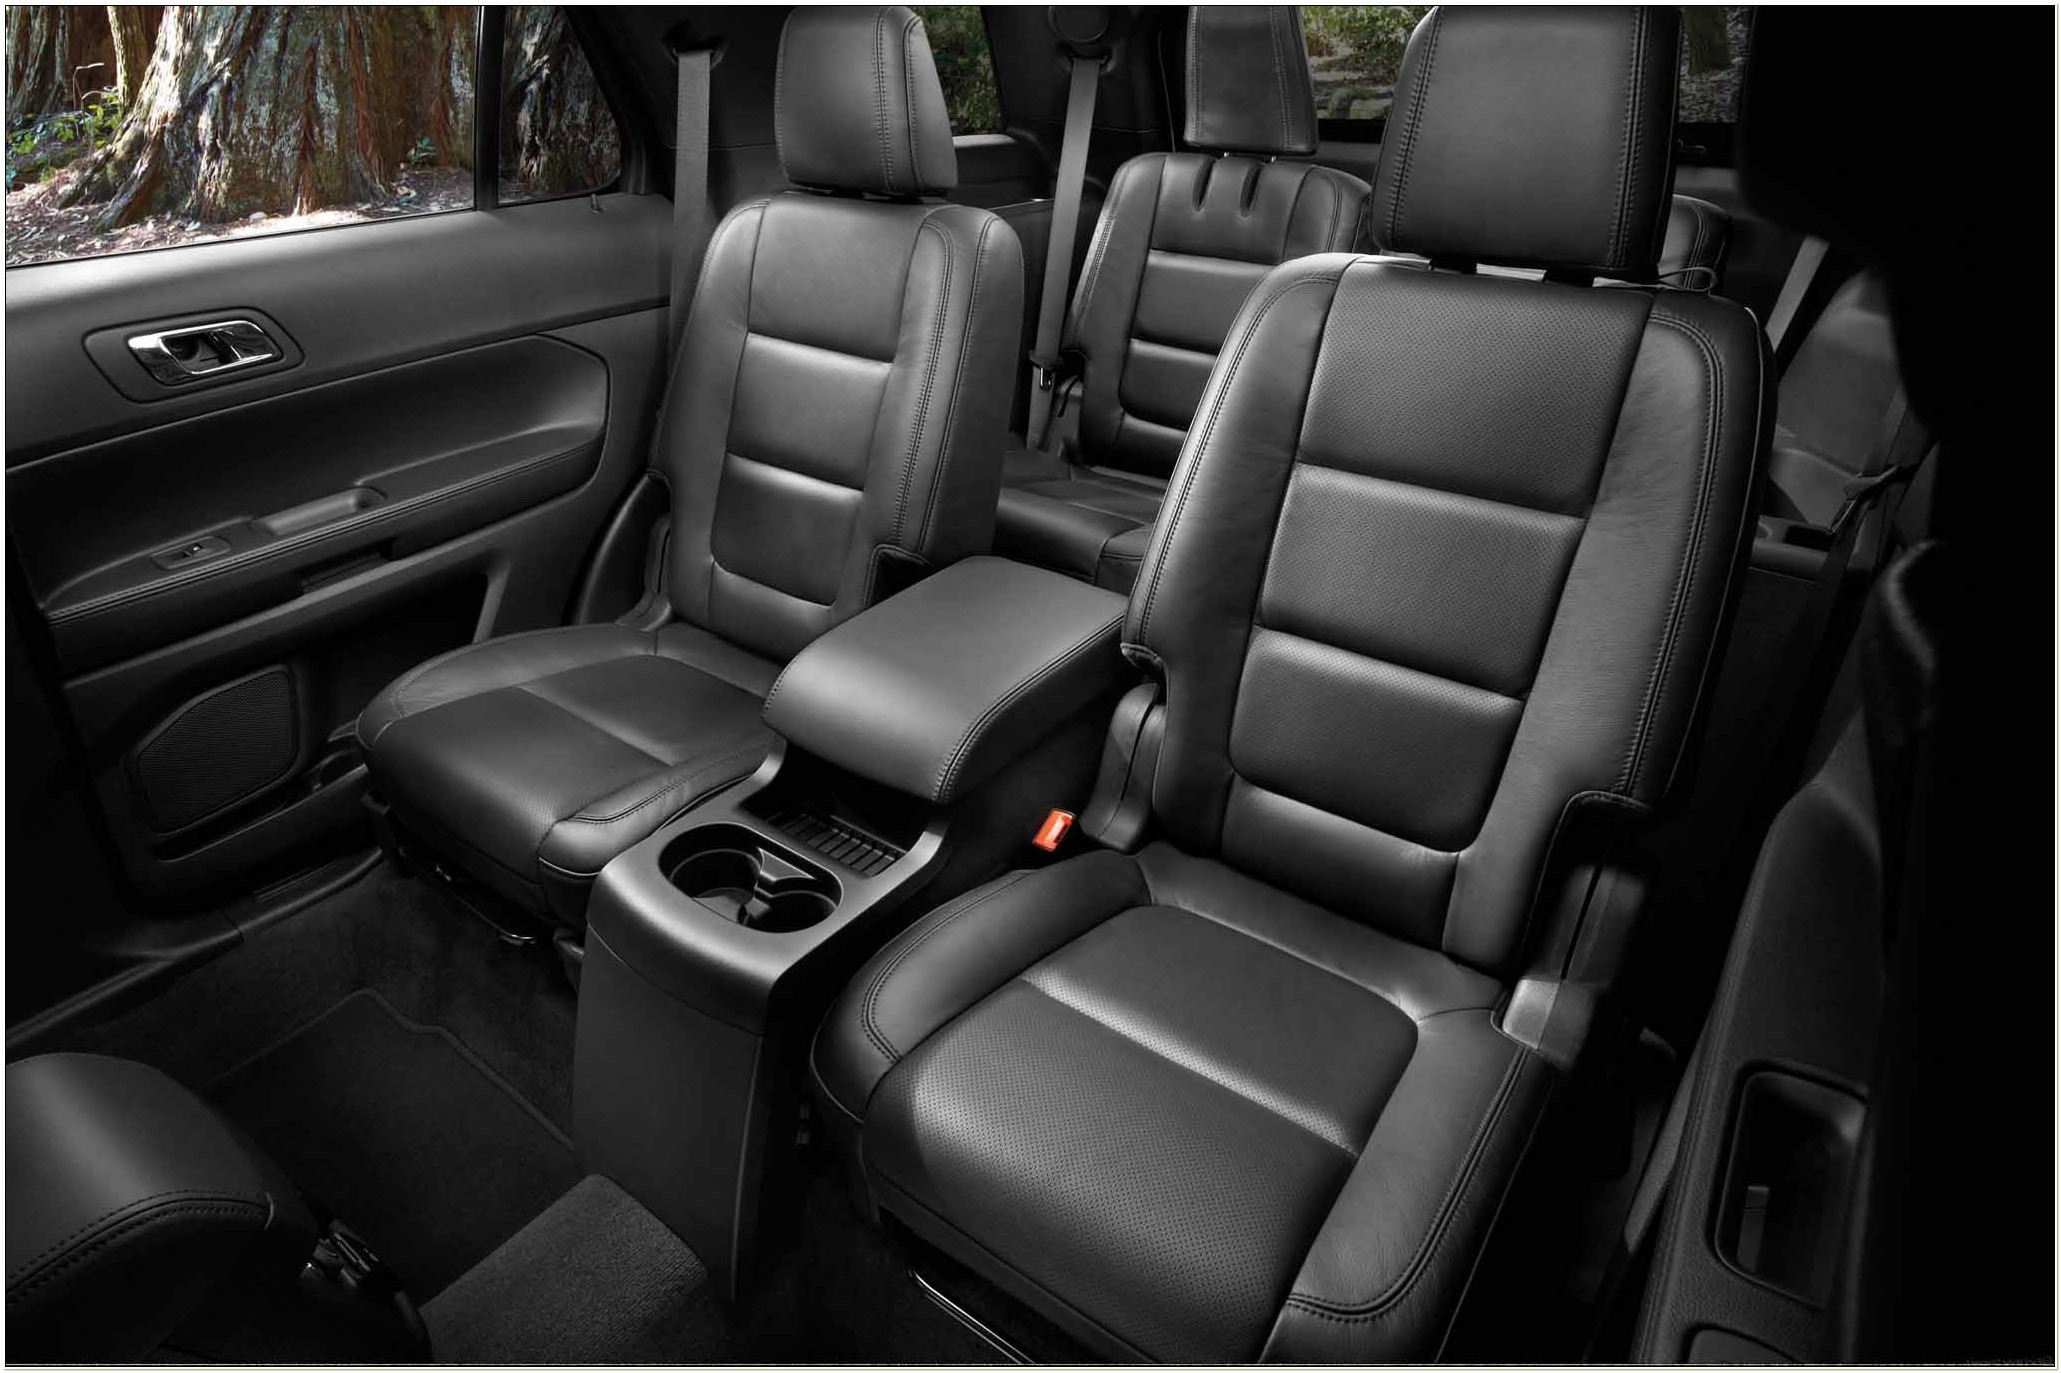 2012 Ford Explorer With Captains Chairs